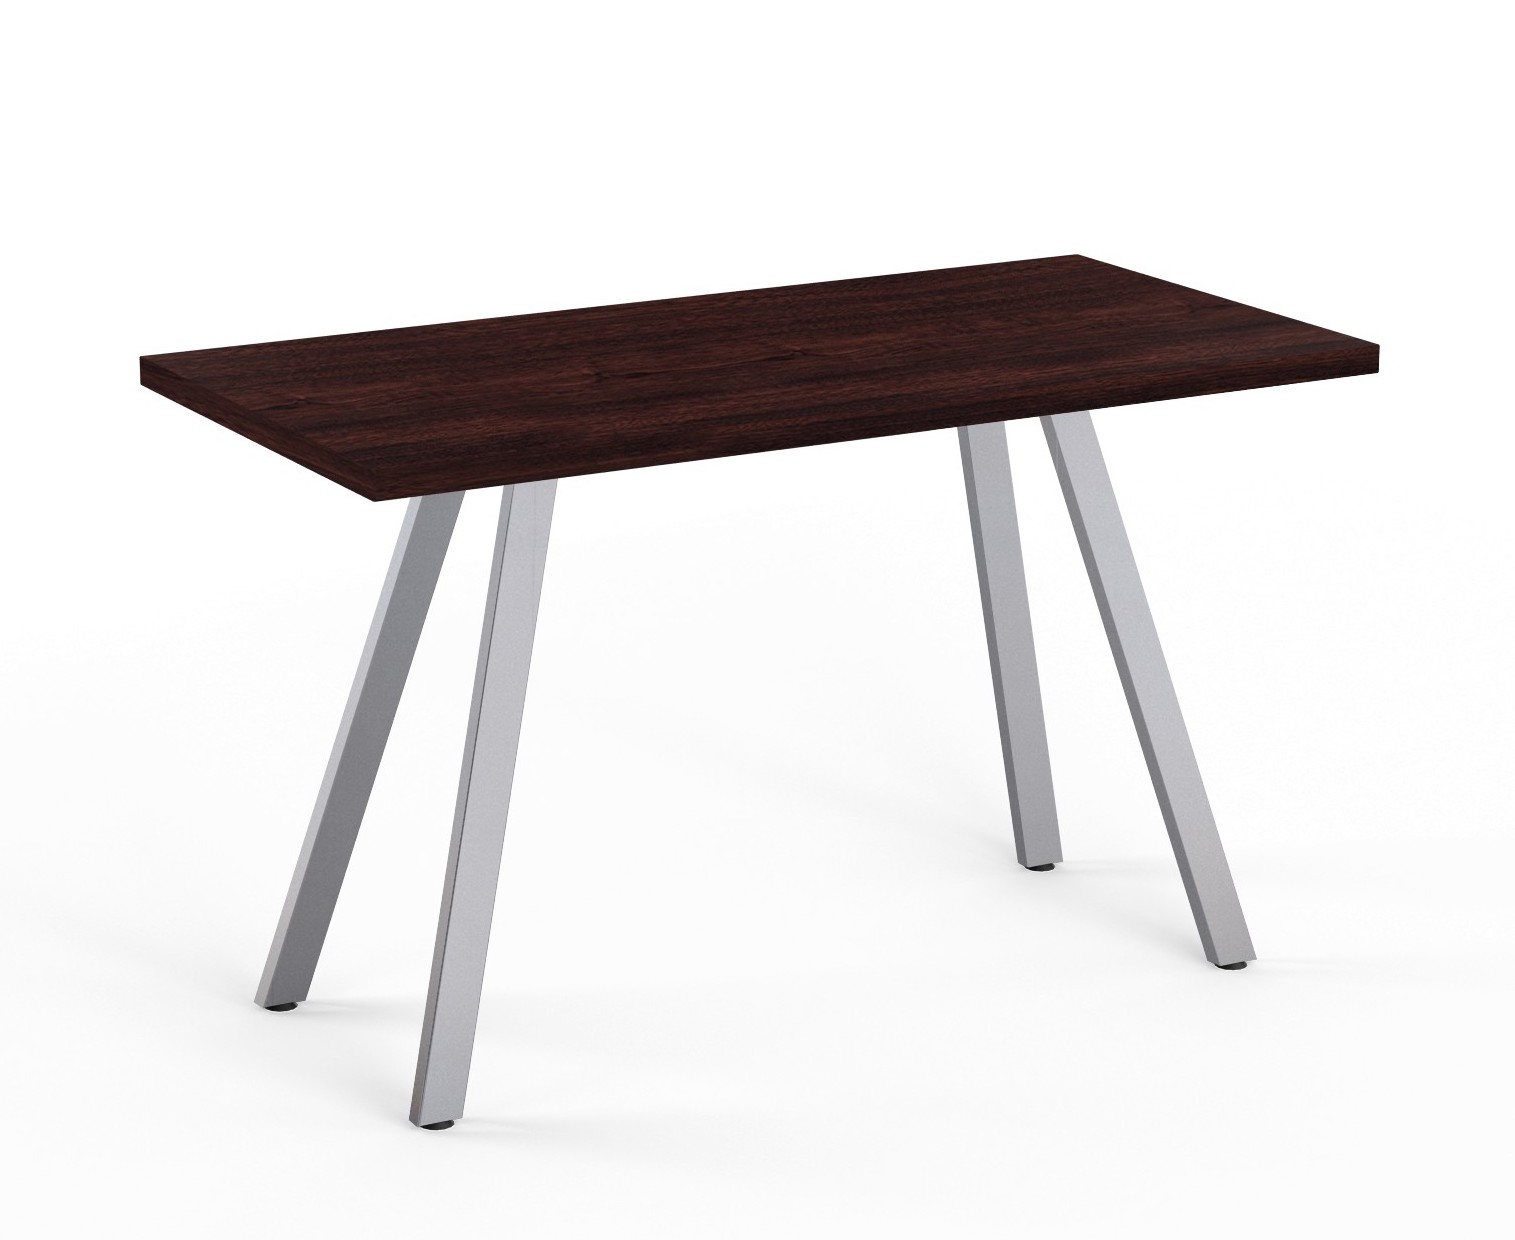 espresso aim table by special-t